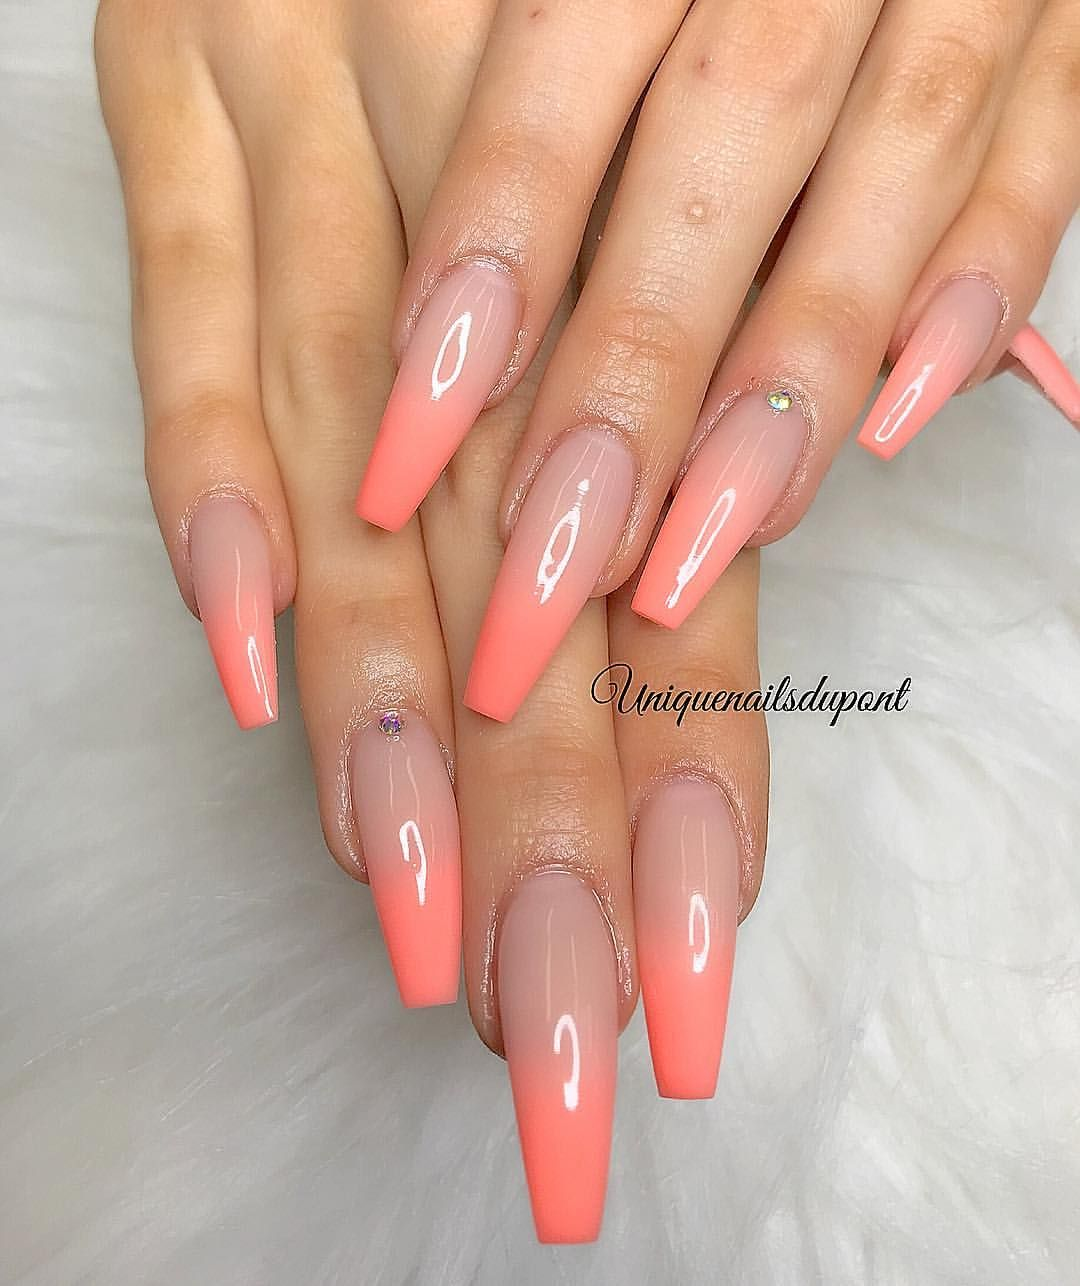 "Photo of Tina Le on Instagram: ""Biogel fullset with ombre gel  #nails #nailart  #biogel  #biosculpture #artificialnails #fakenails #manicure #pedicure #nailssalon…"""